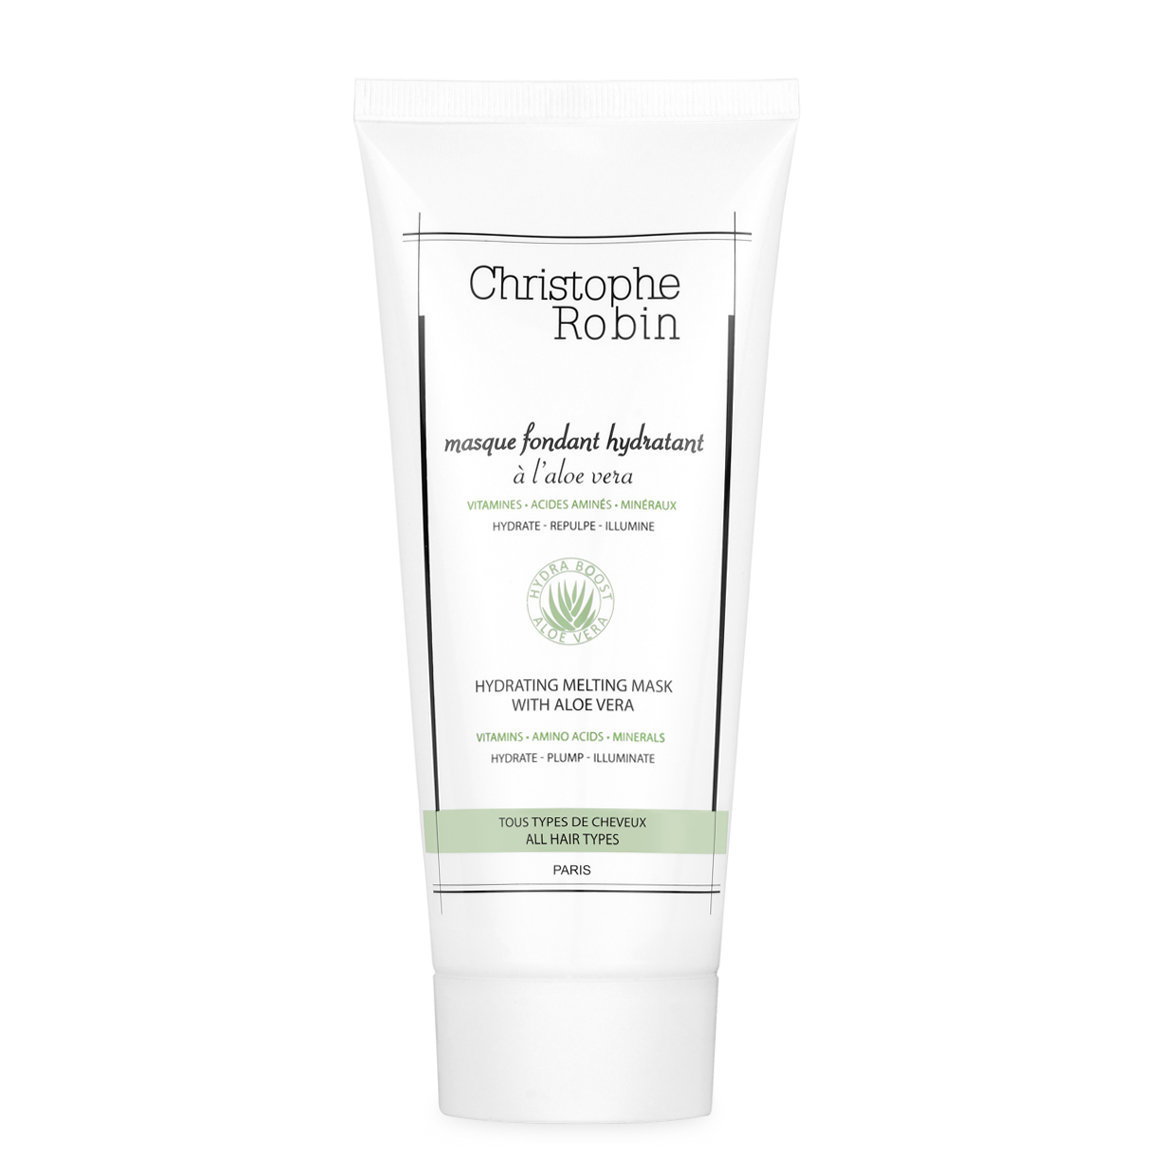 Christophe Robin Hydrating Melting Mask with Aloe Vera 200 ml alternative view 1 - product swatch.